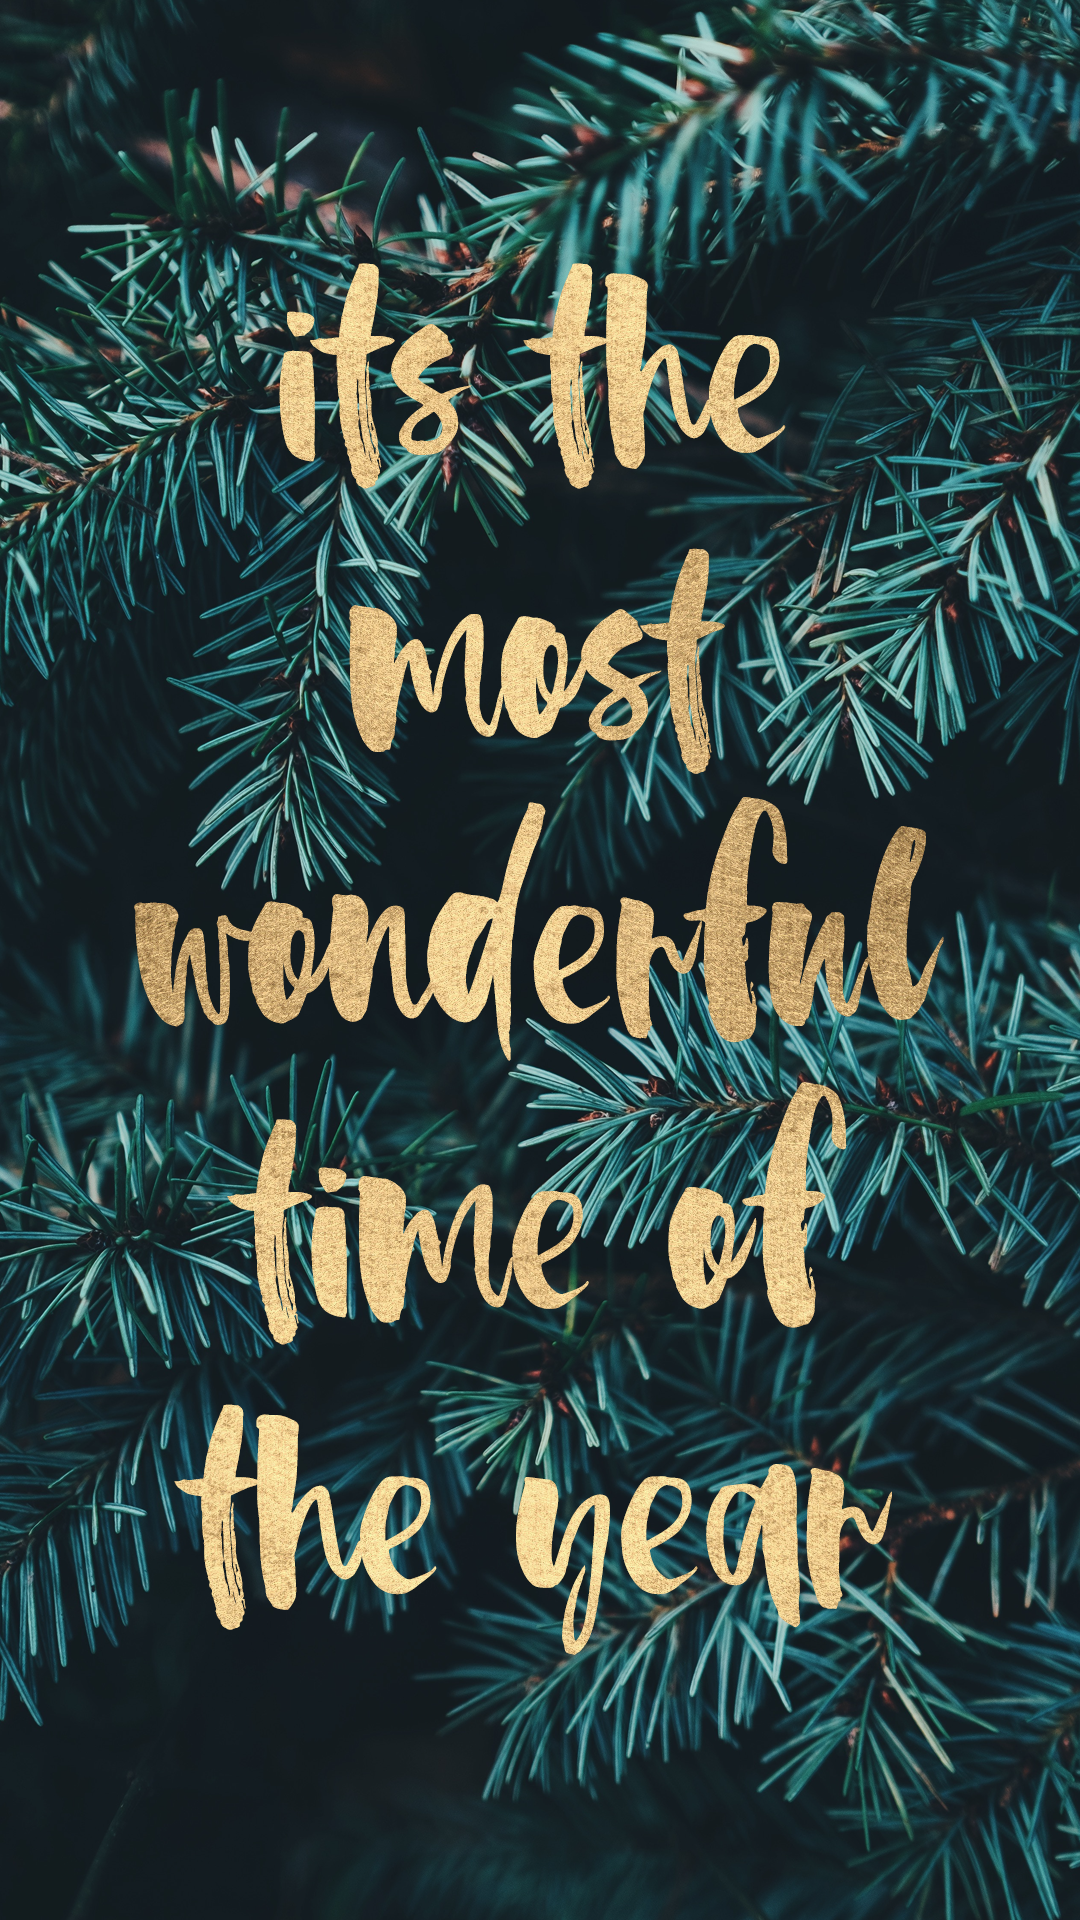 It Is The Most Wonderful Time Of The Year Free Wallpaper Or Background For Your Christmas Phone Wallpaper Wallpaper Iphone Christmas Cute Christmas Wallpaper